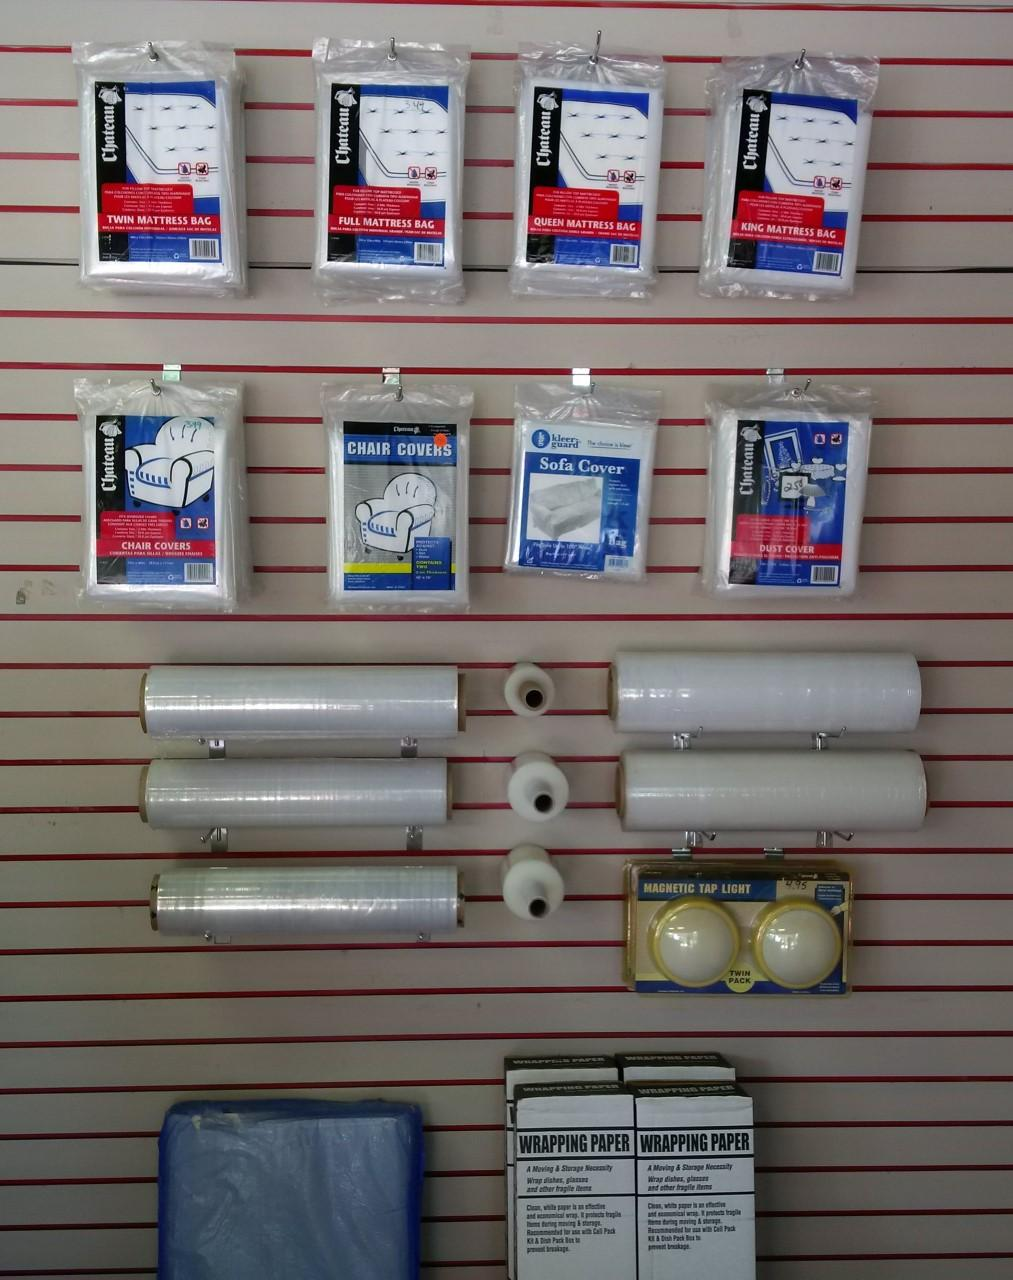 Mattress Bags/Covers. Small & Large Shrink Wrap. Wrapping Paper.